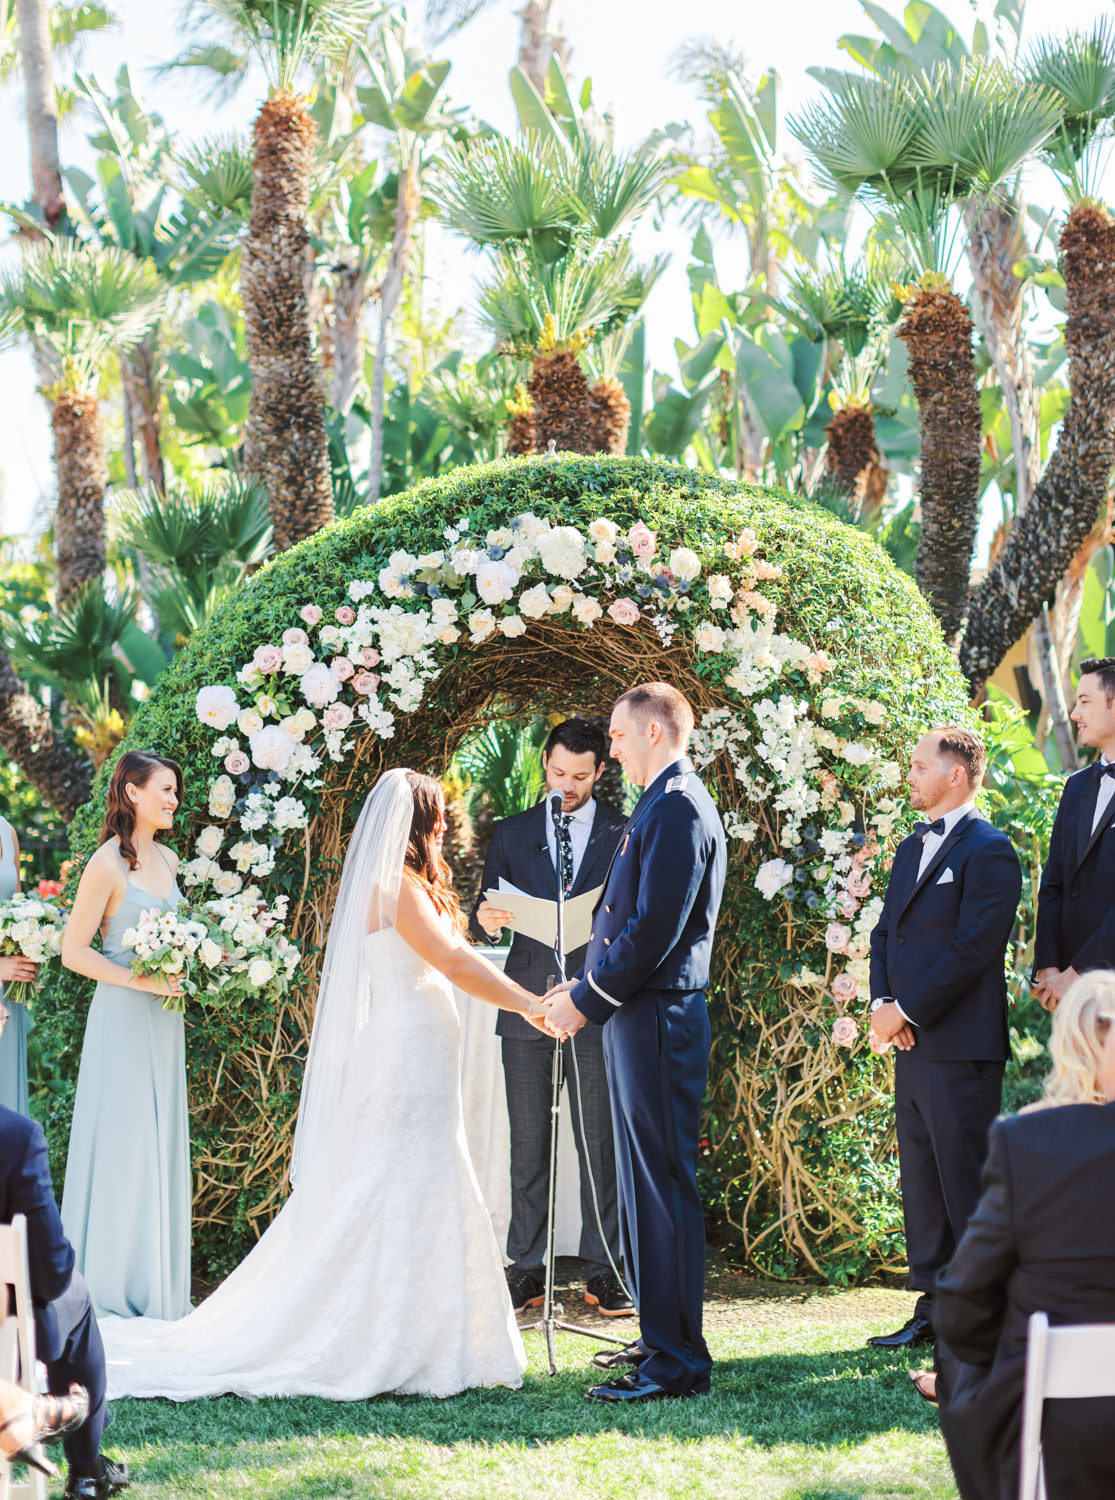 Wedding ceremony captured on film in a garden setting with palm trees and a floral arch with blush and ivory flowers. Wedding at Humphreys Half Moon Inn by Cavin Elizabeth Photography